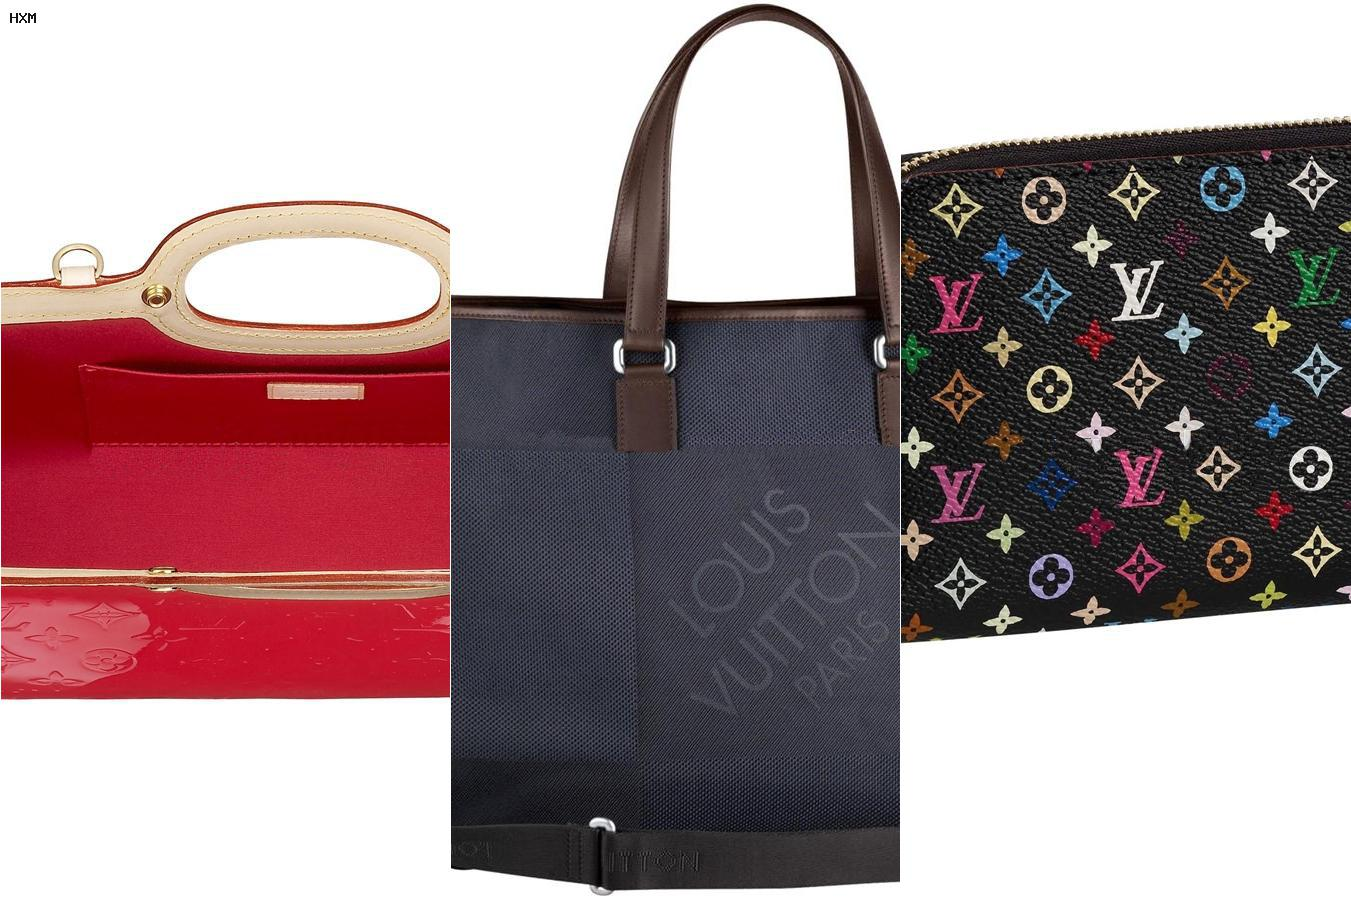 louis vuitton bags new collection 2020